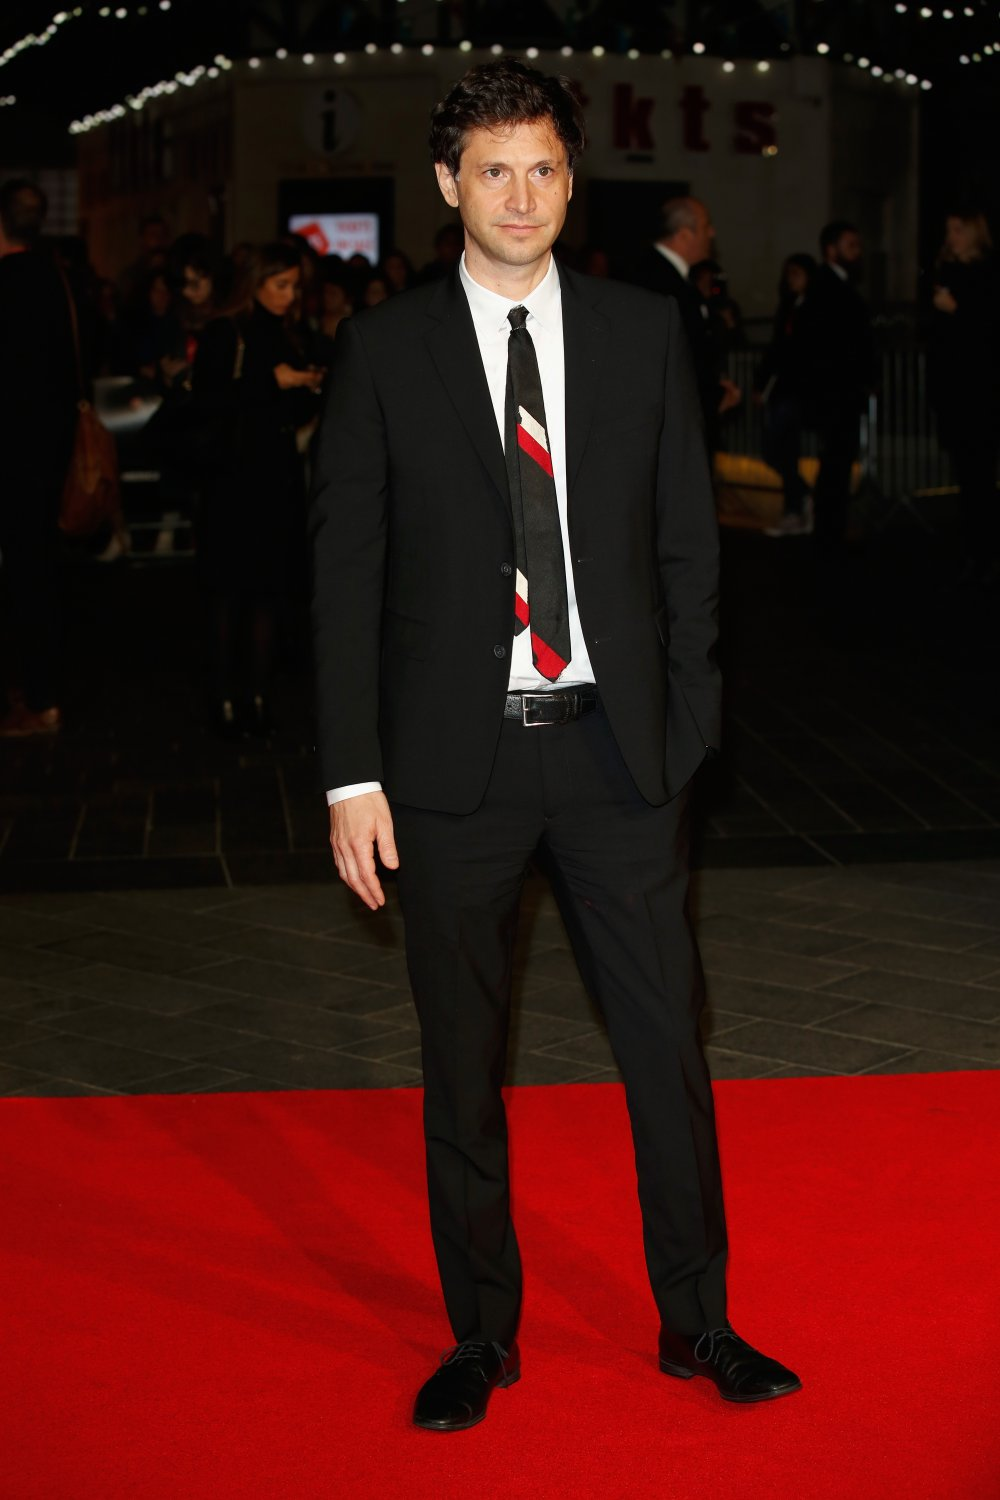 Bennett Miller on the red carpet for Foxcatcher during the 58th BFI London Film Festival